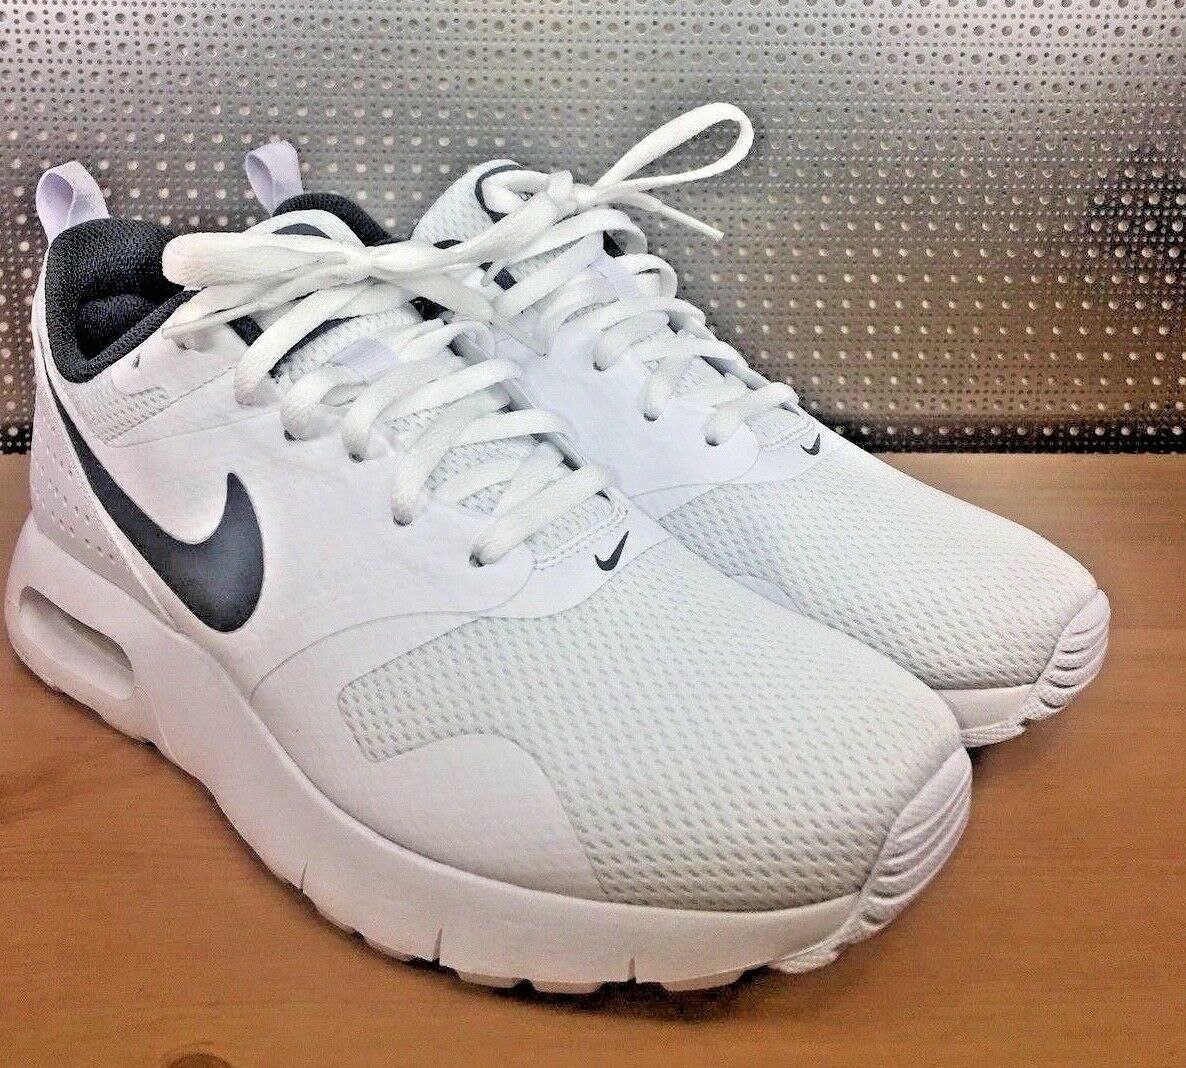 Nike AIR MAX TAVAS (GS) White Grey Youth Size 7Y WMNS Size 8.5 (814443 101) NWOB